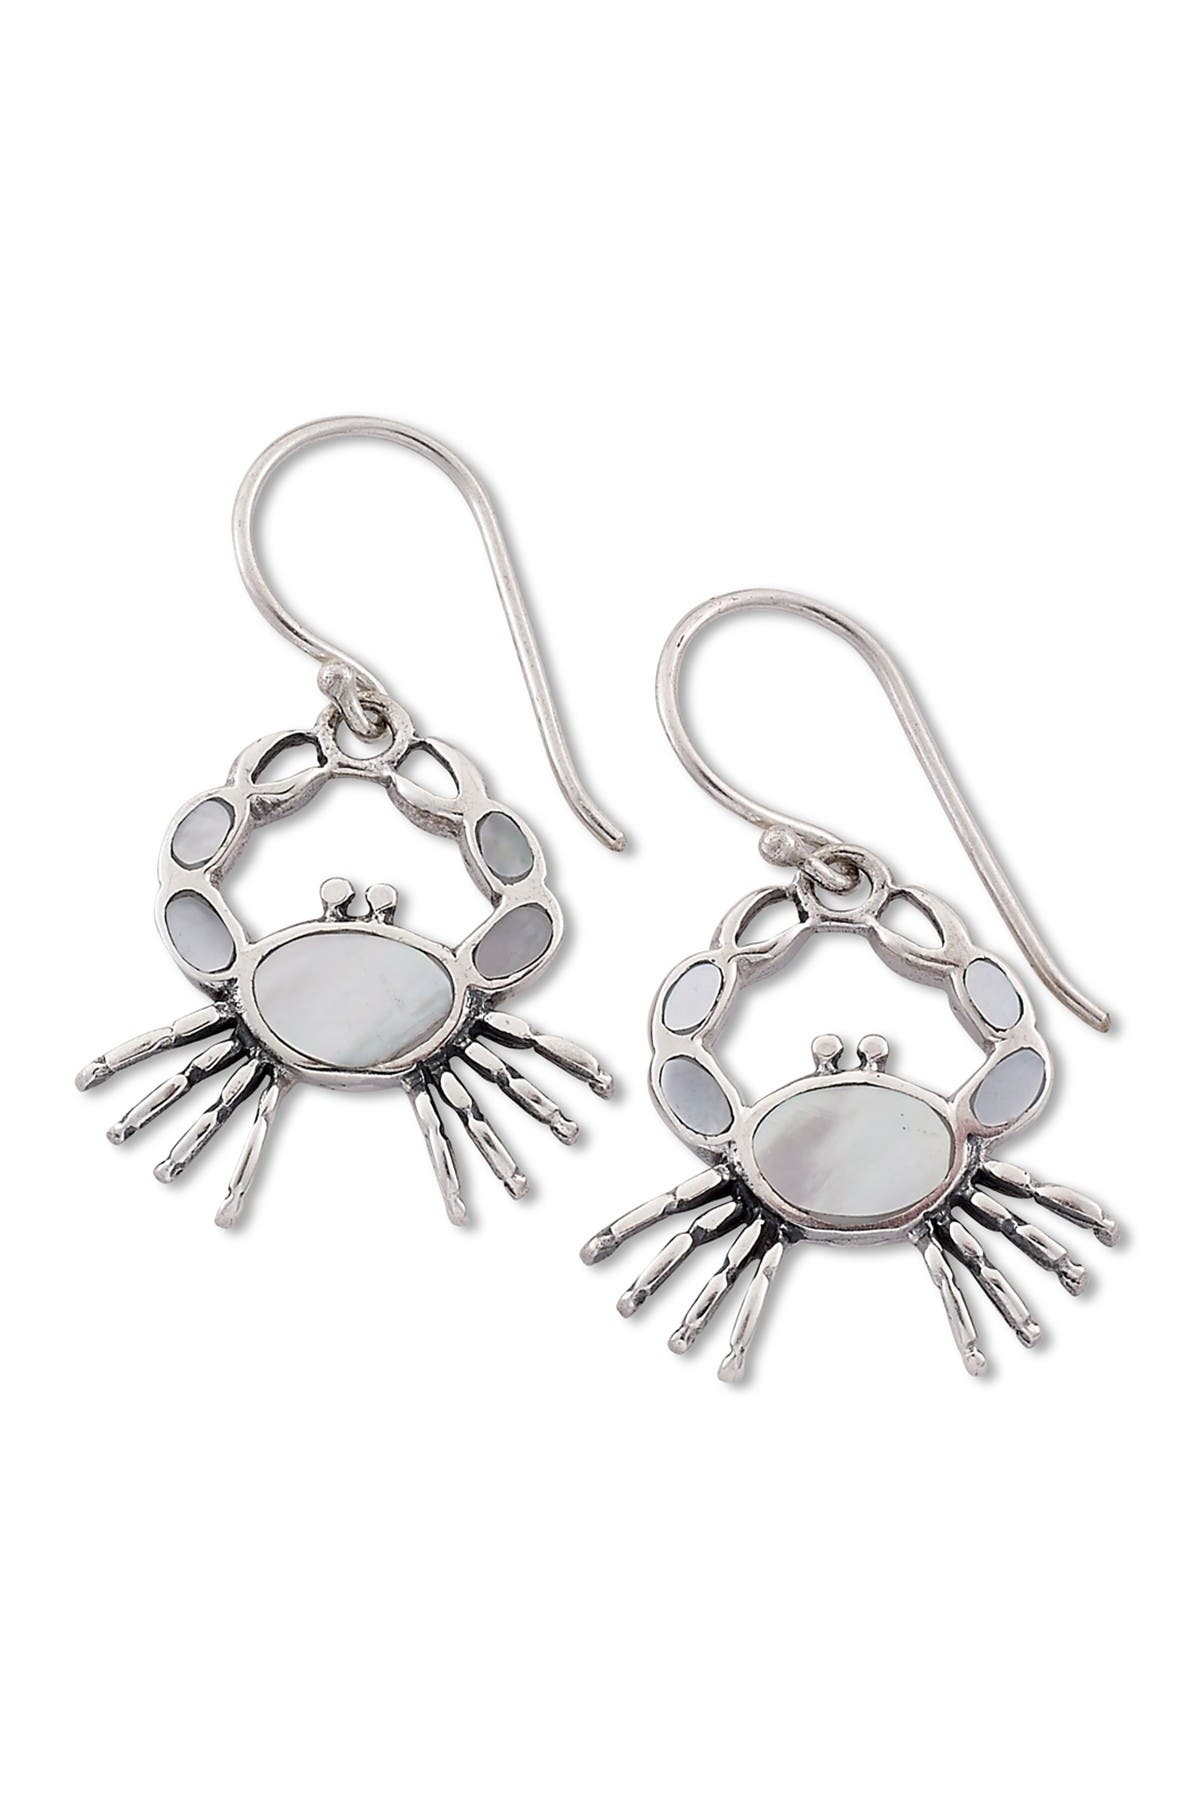 Image of Samuel B Jewelry Sterling Silver Mother of Pearl Crab Earrings